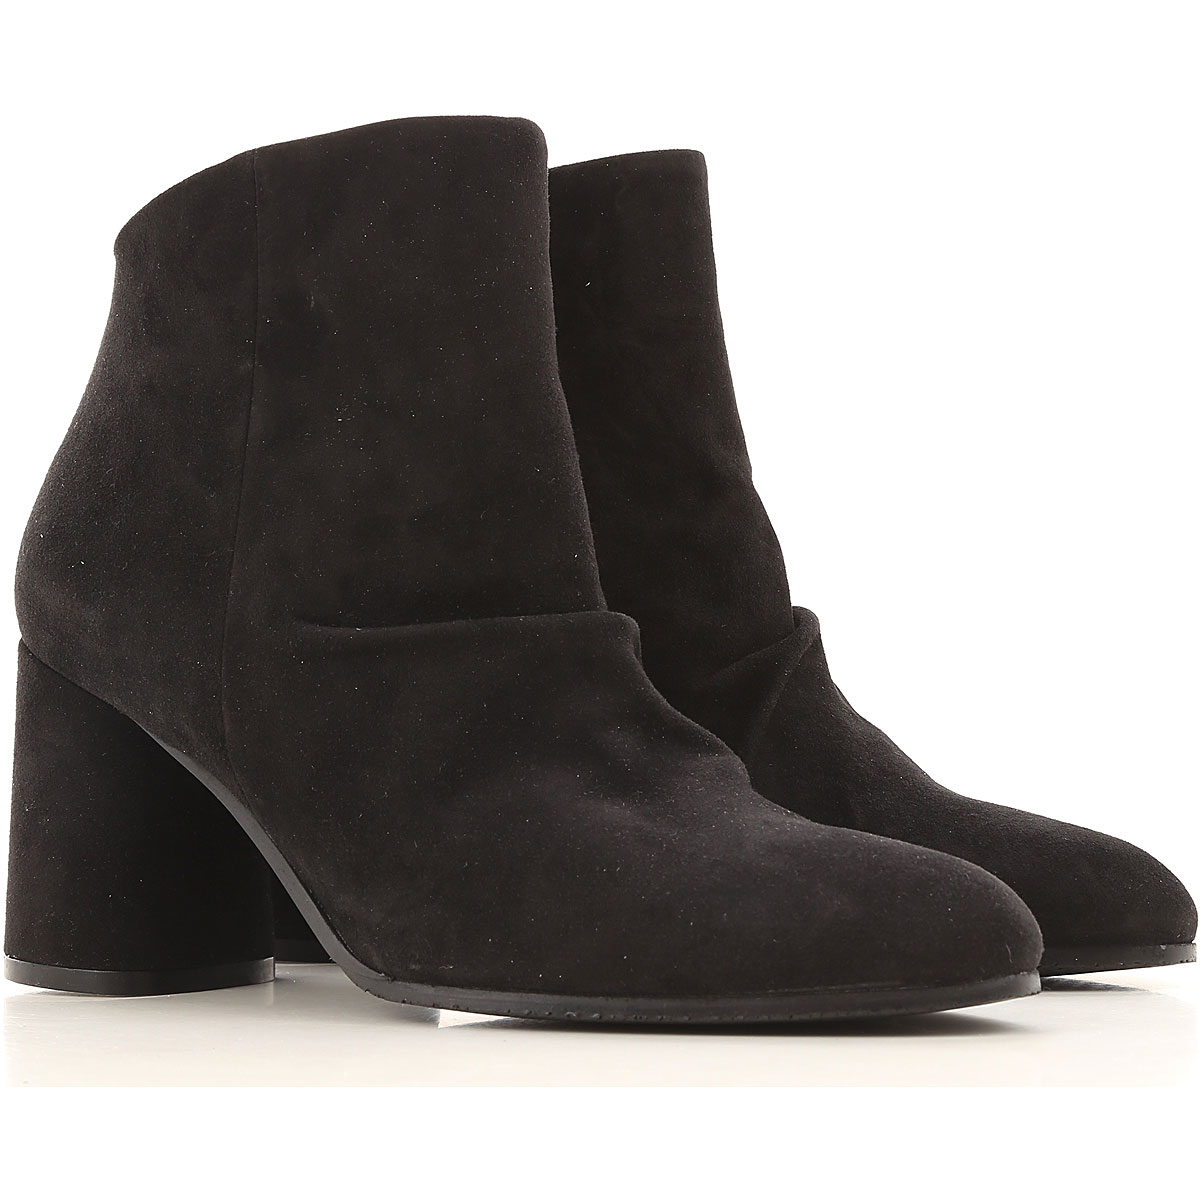 Elvio Zanon Boots for Women, Booties On Sale in Outlet, Black, Suede leather, 2019, 10 7 8